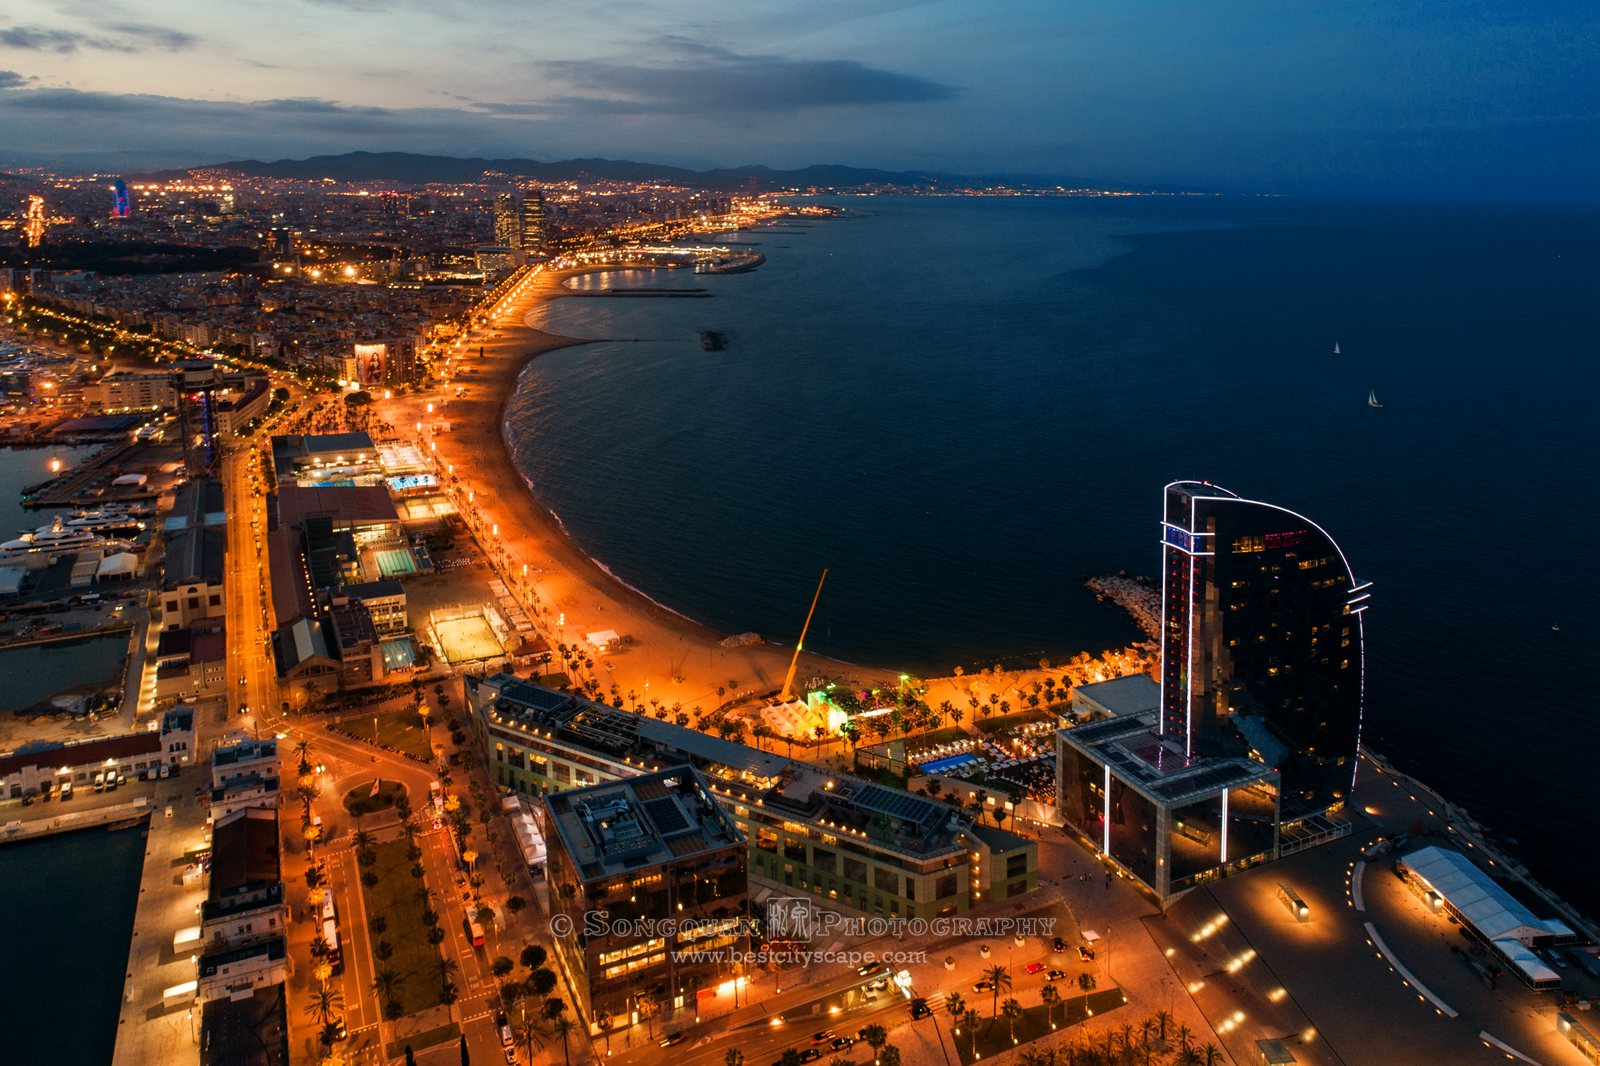 Dusk Bay Aerial View Barcelona Spain Songquan Photography